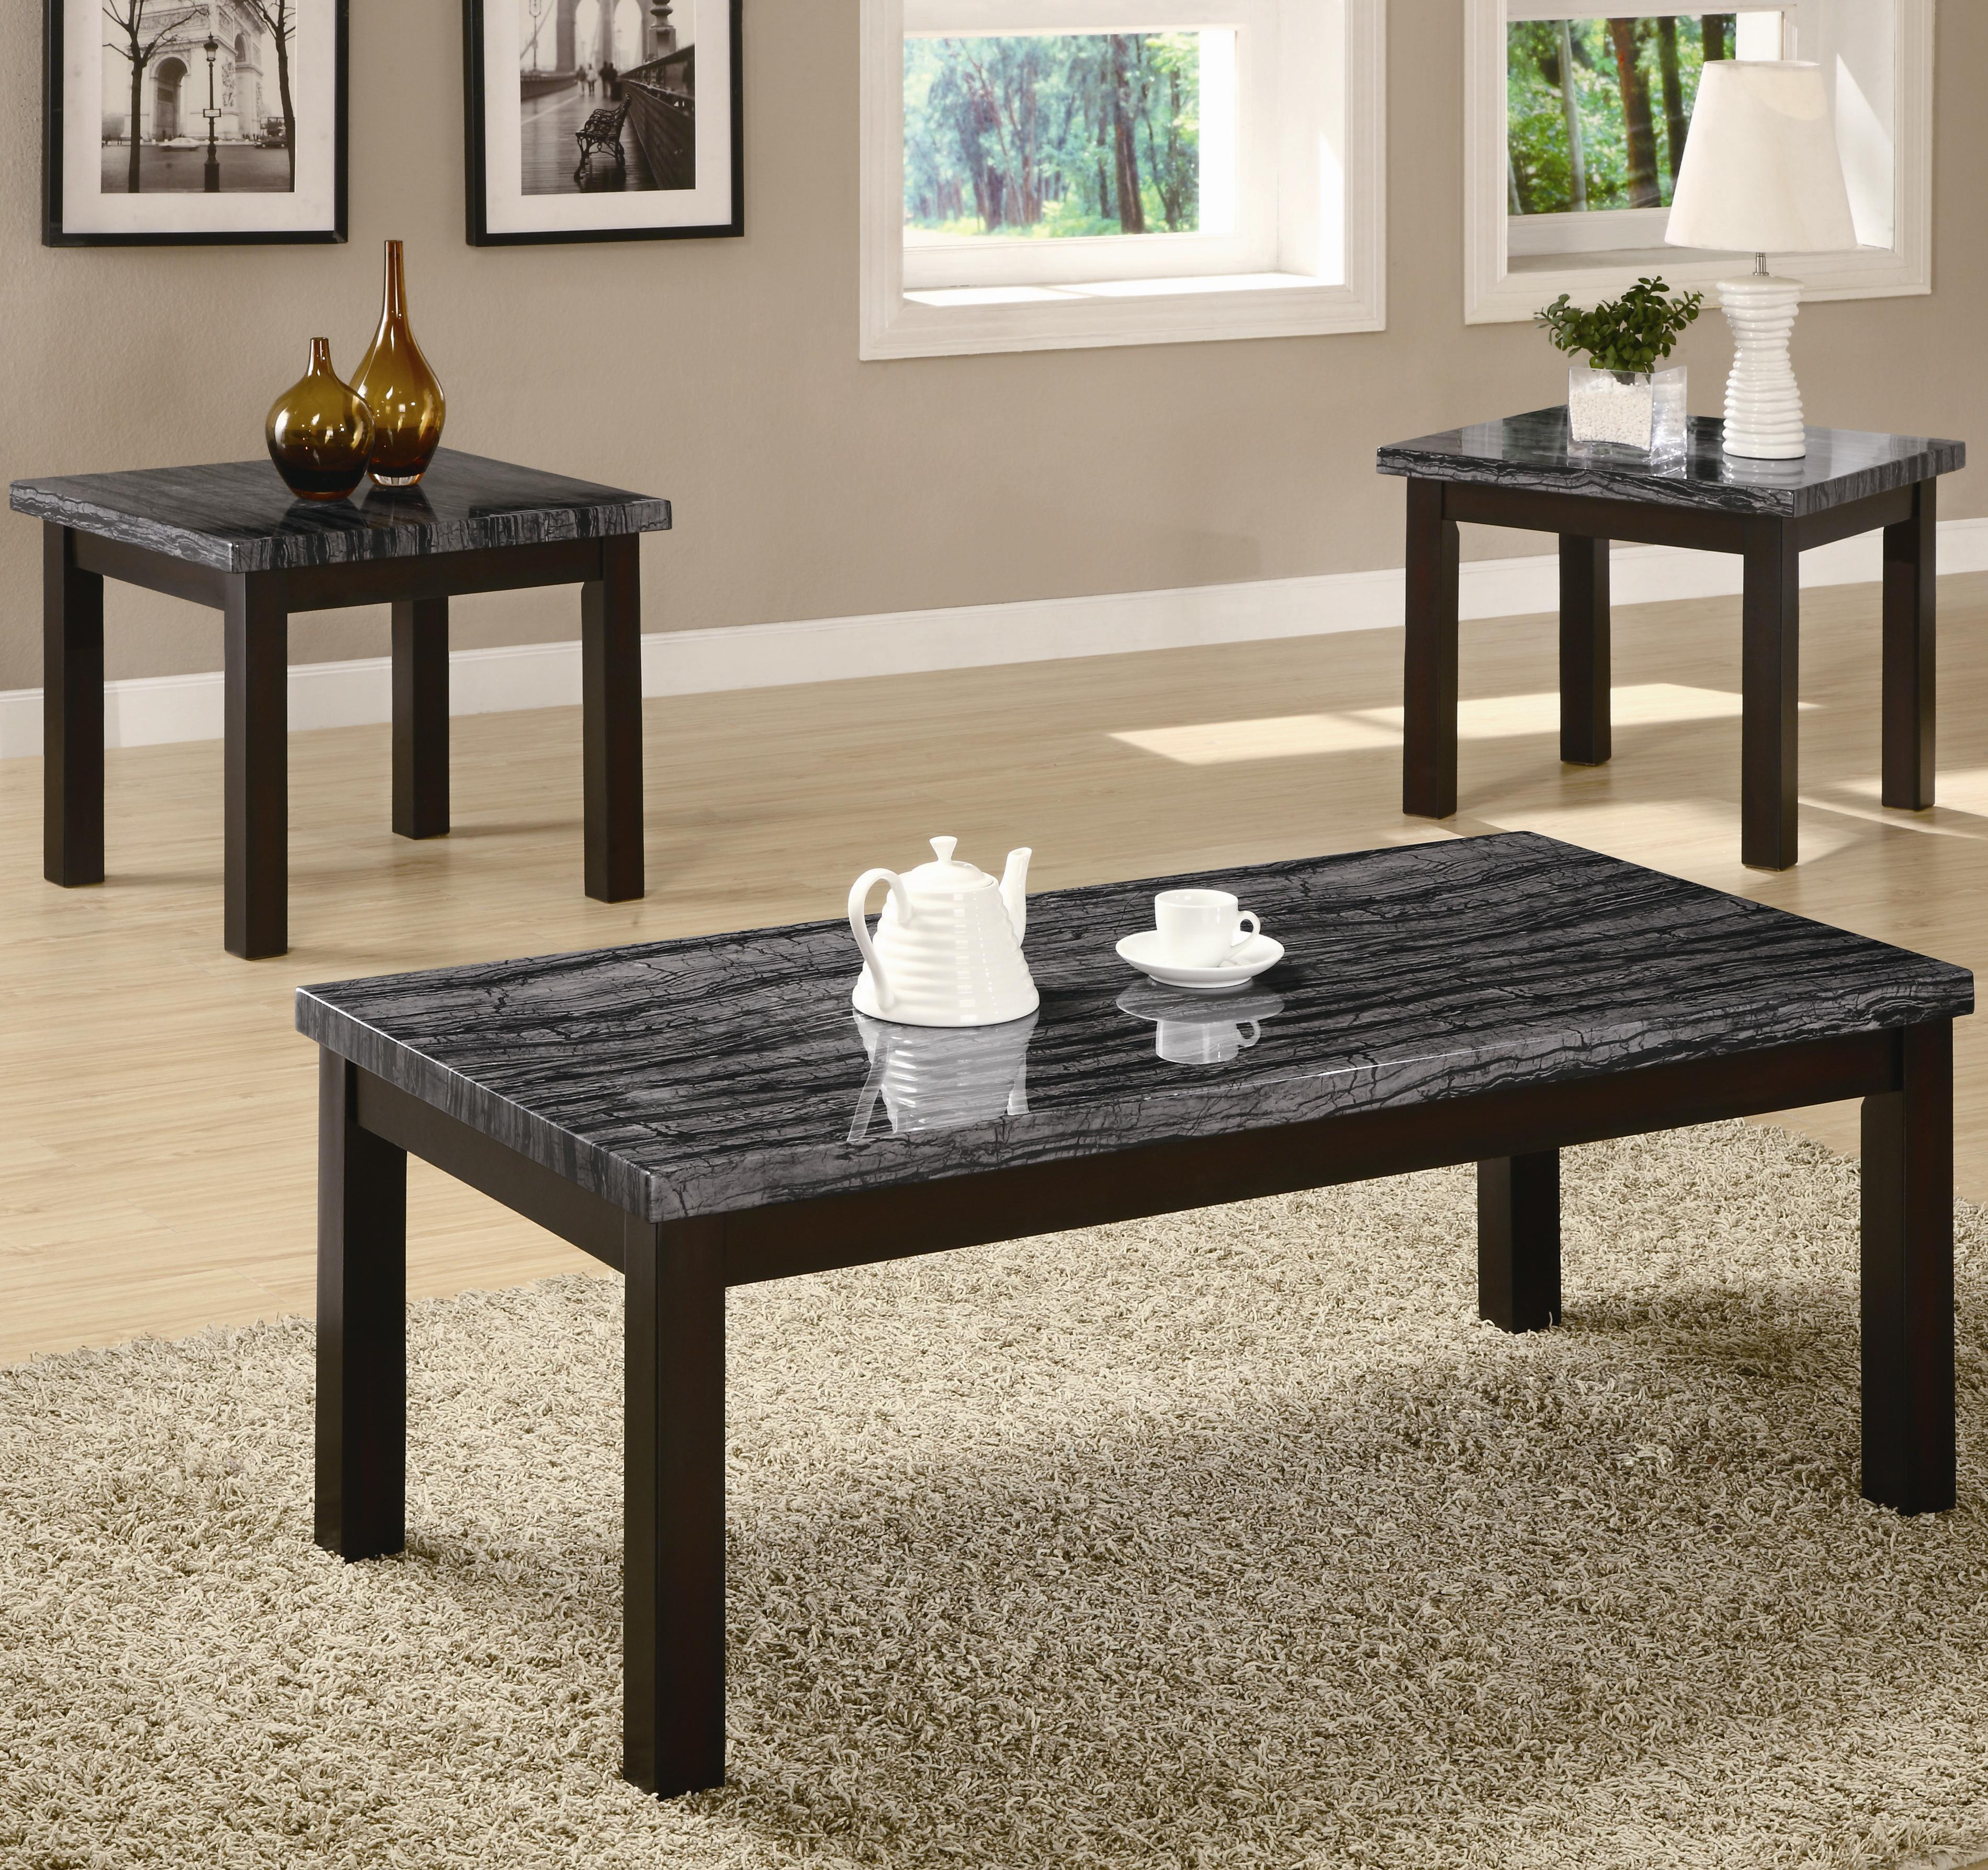 Faux Marble Coffee Table Canada: Faux Marble Coffee Table Set & Marble Circle Table Faux